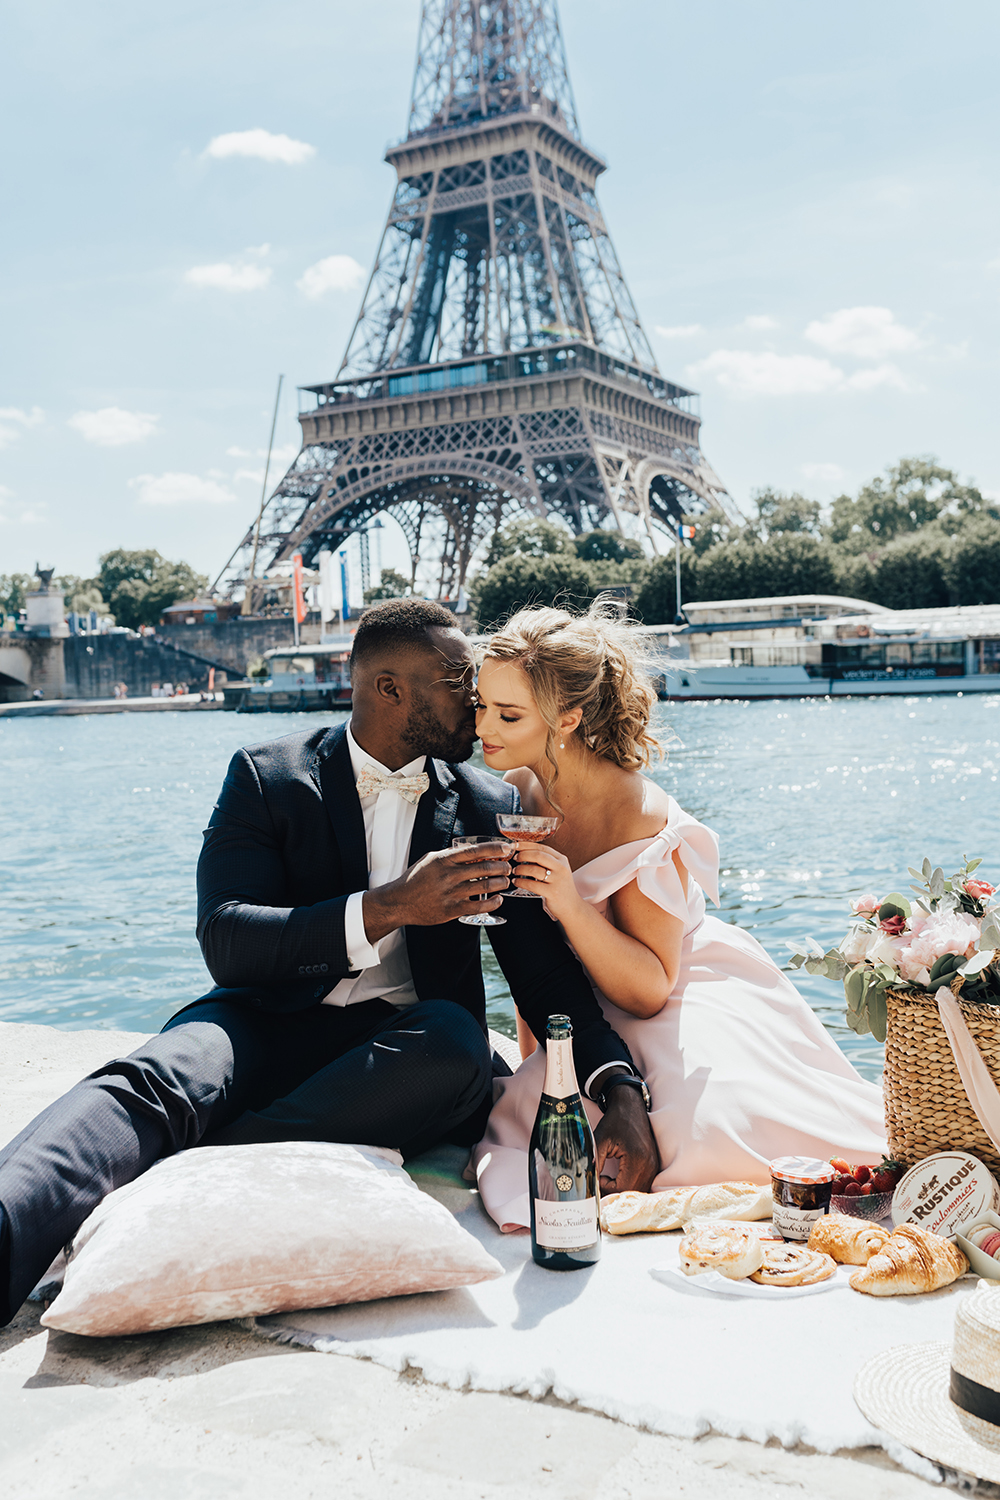 French engagement, picnic on the river, hair and makeup by Storme